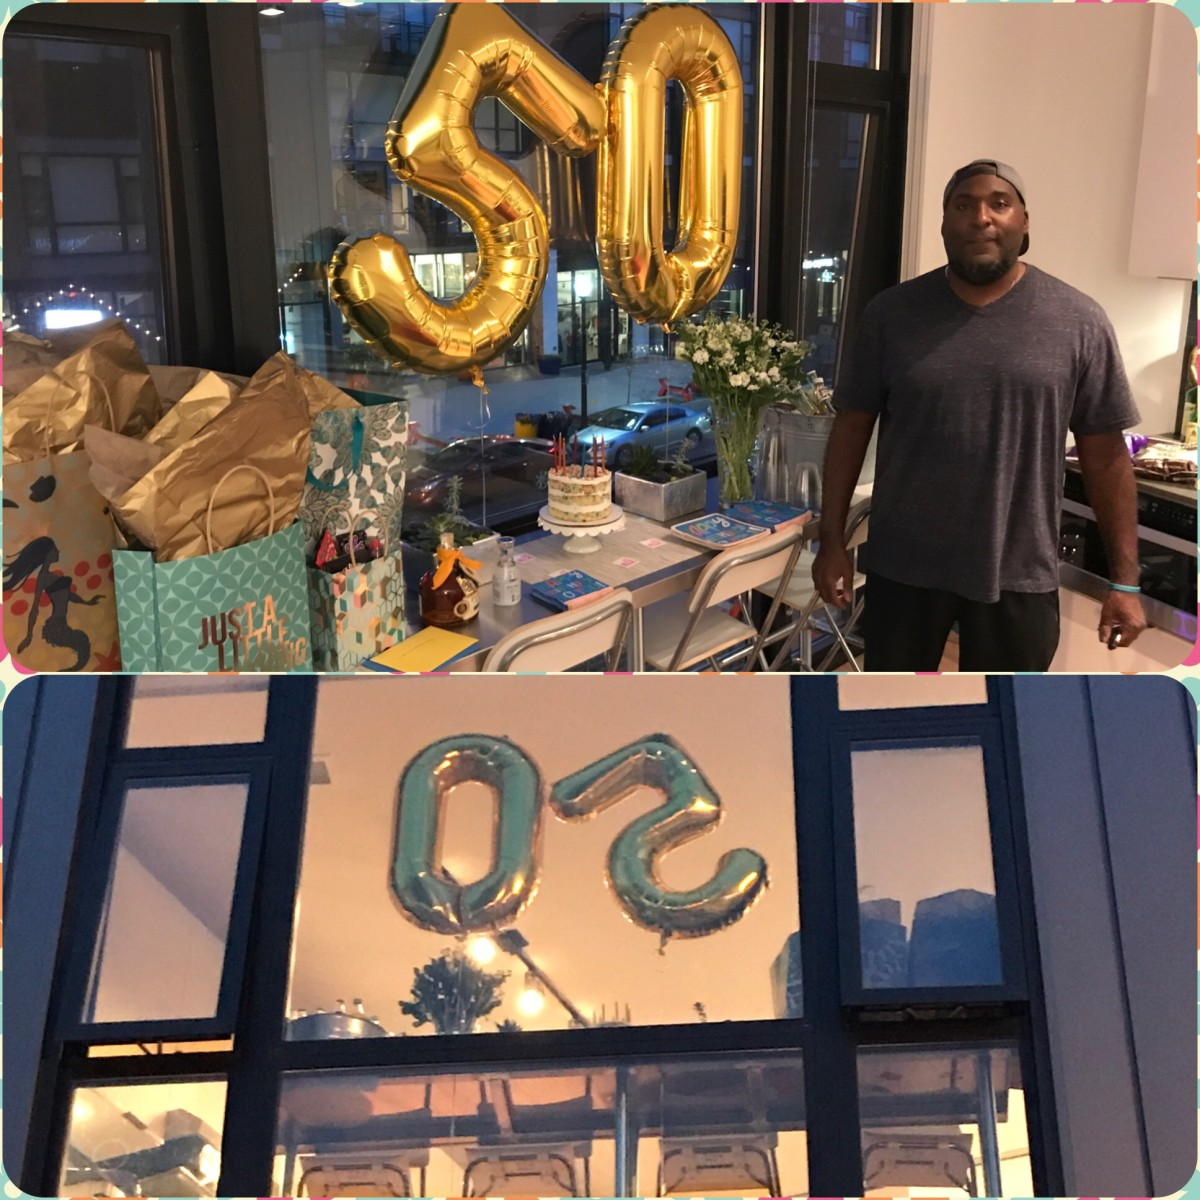 Gregory celebrates his 50th birthday.